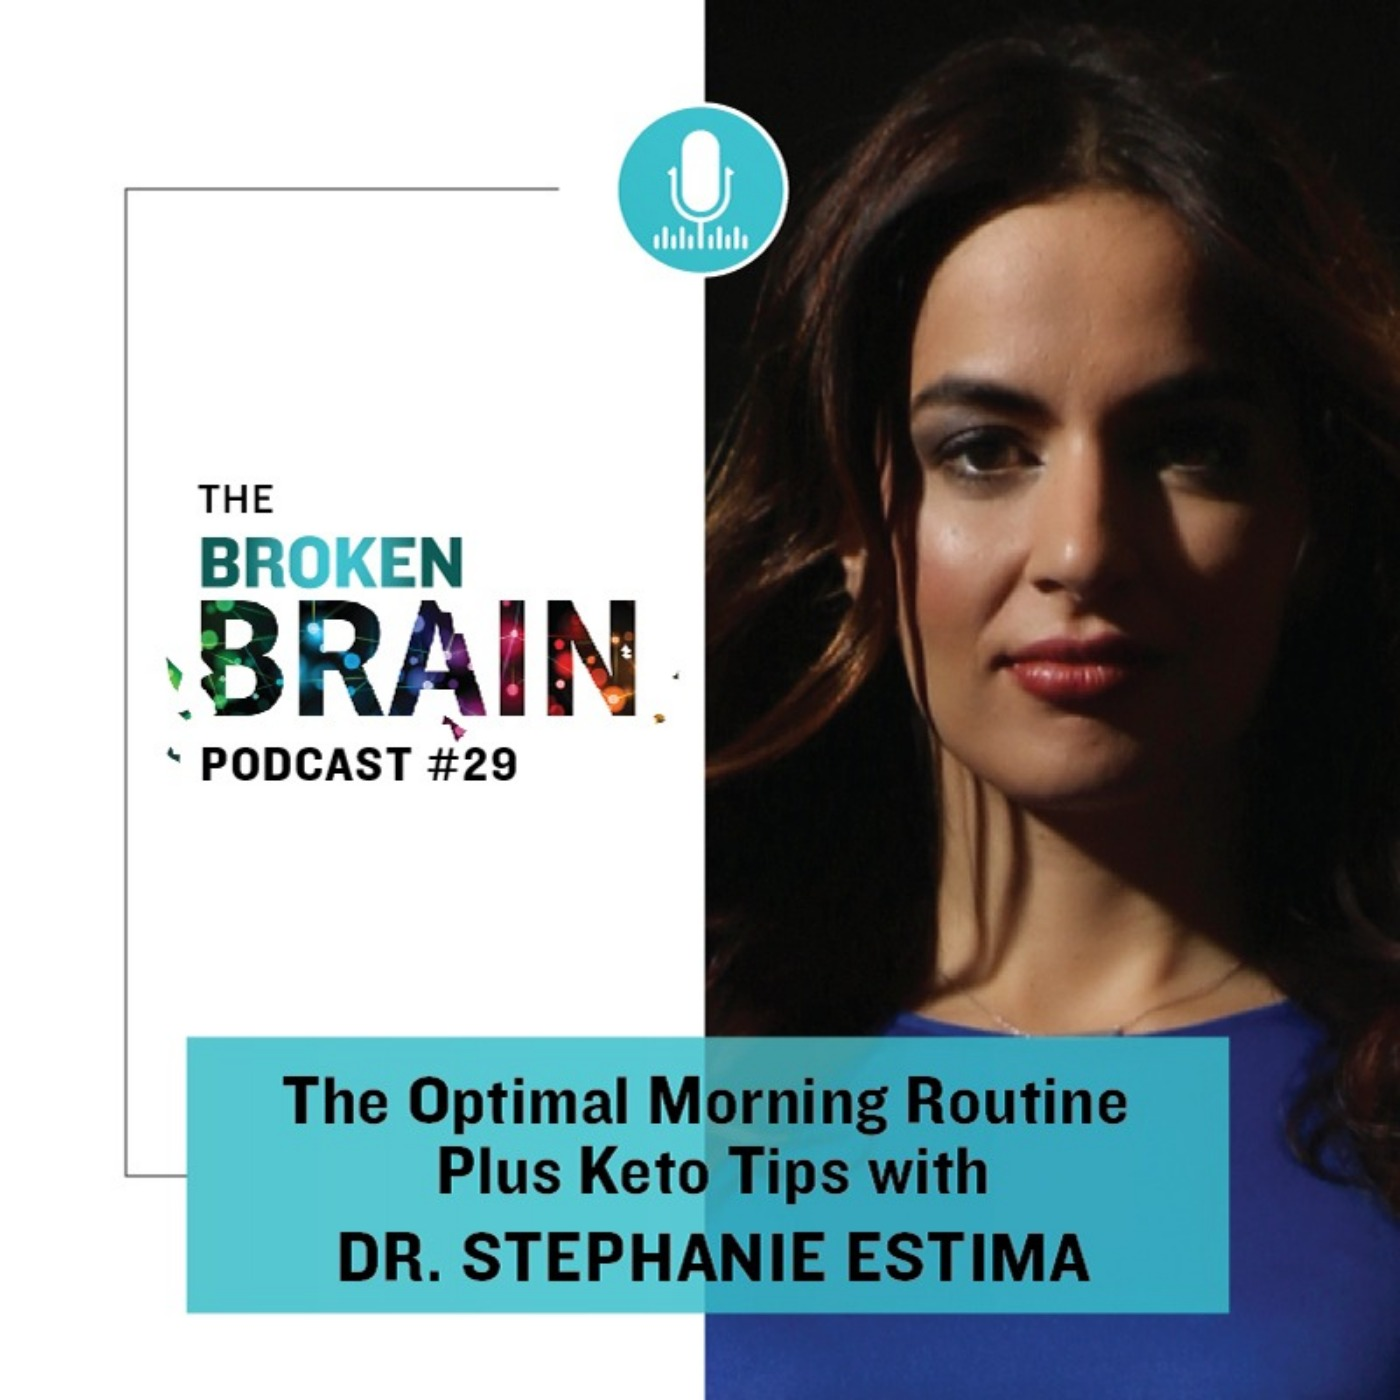 #29: The Optimal Morning Routine Plus Keto Tips with Dr. Stephanie Estima